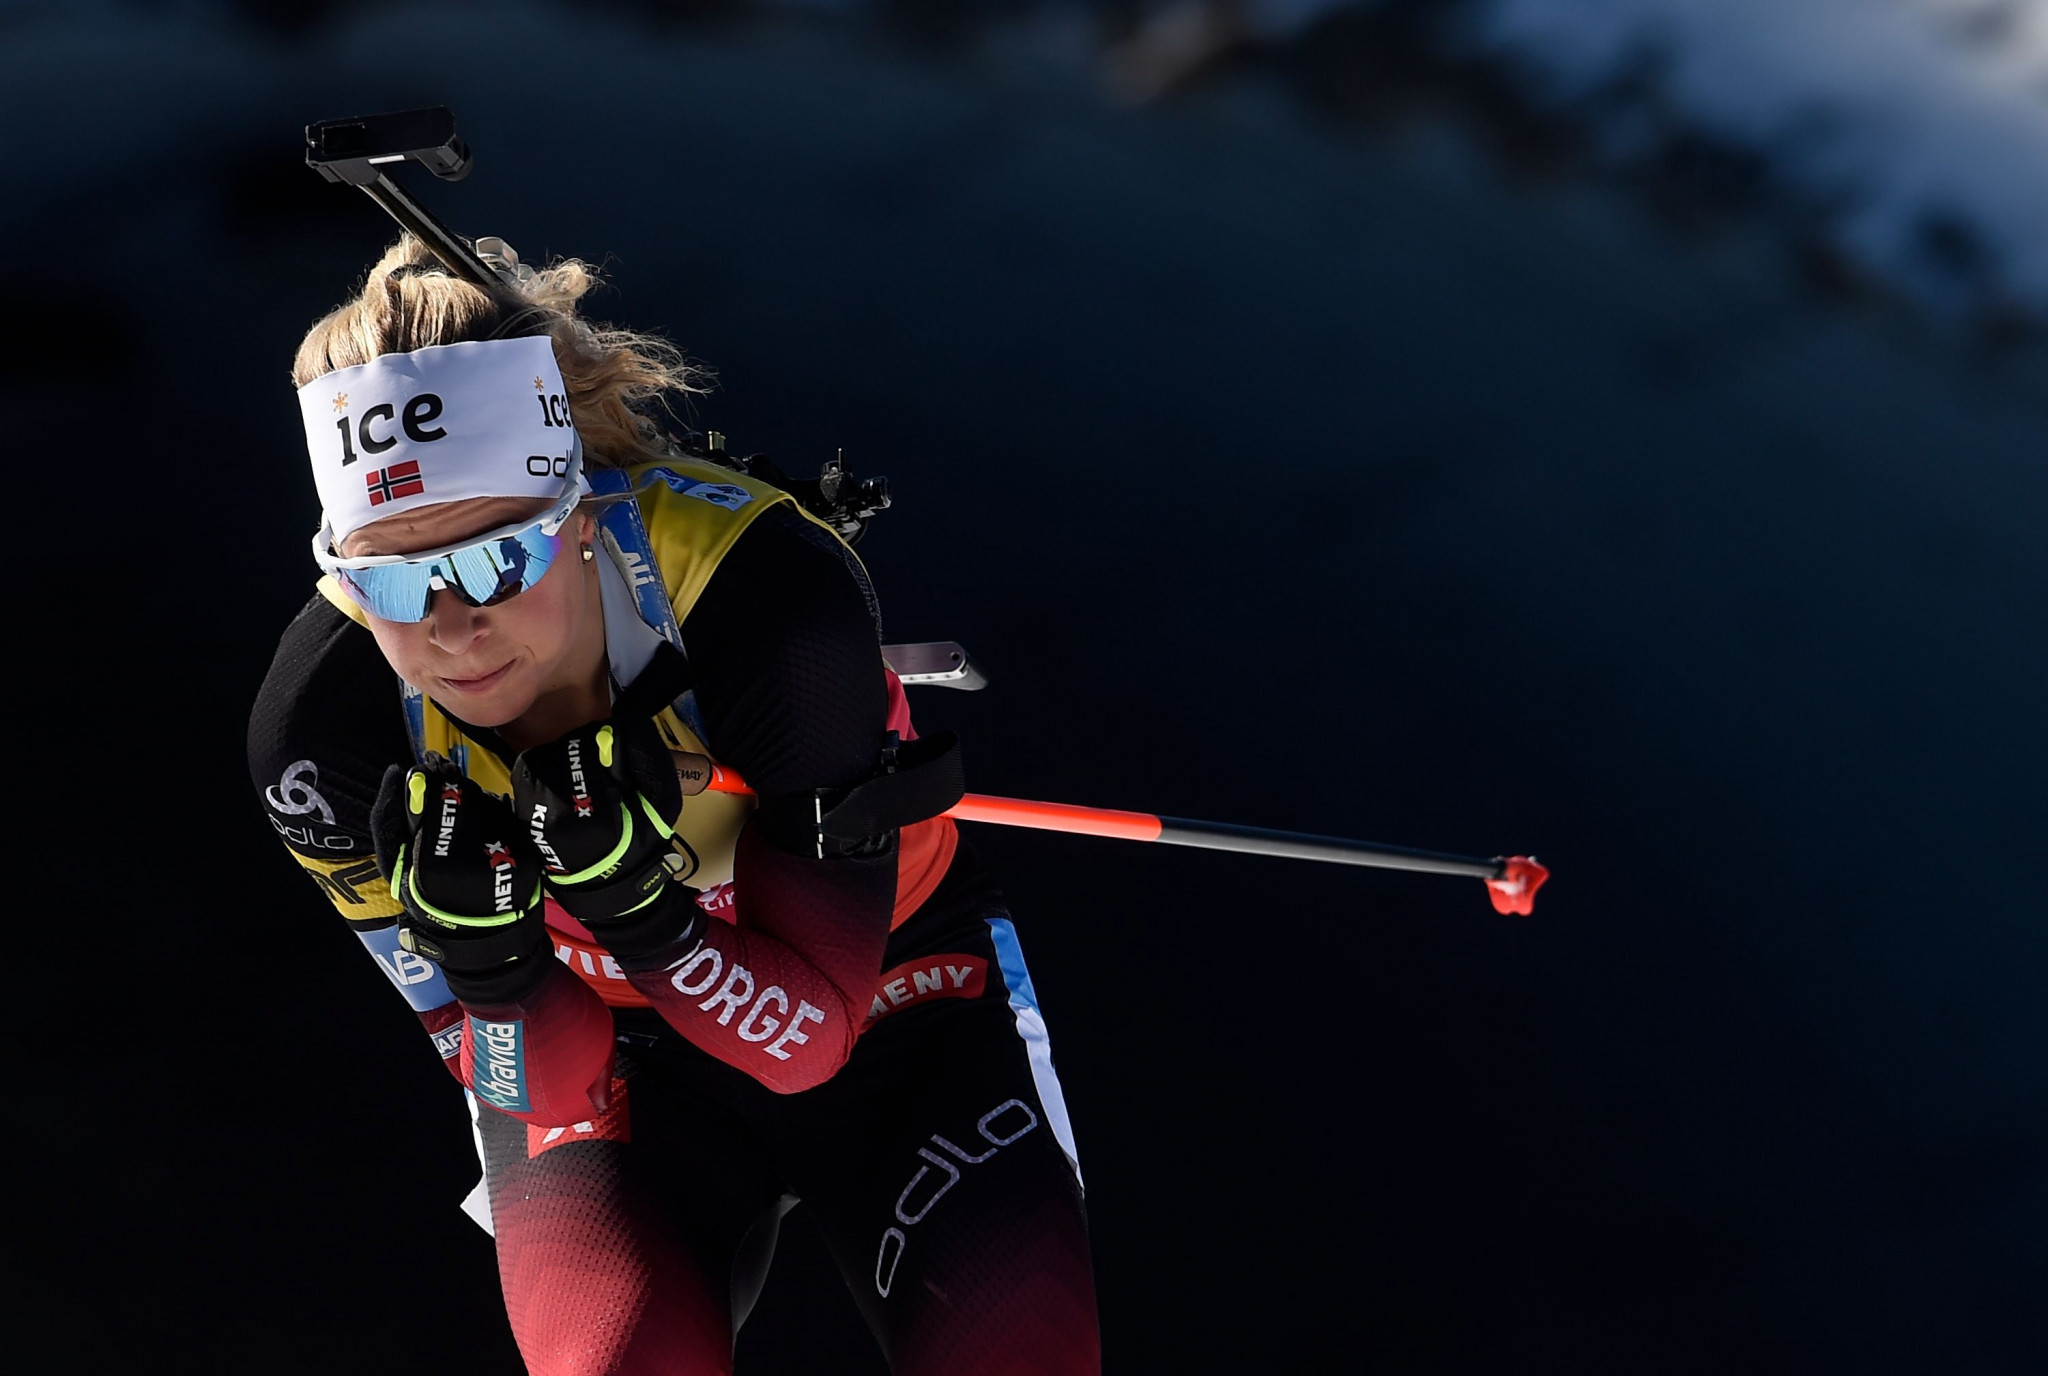 Tiril Eckhoff earned her second successive win at the IBU World Cup ©Getty Images